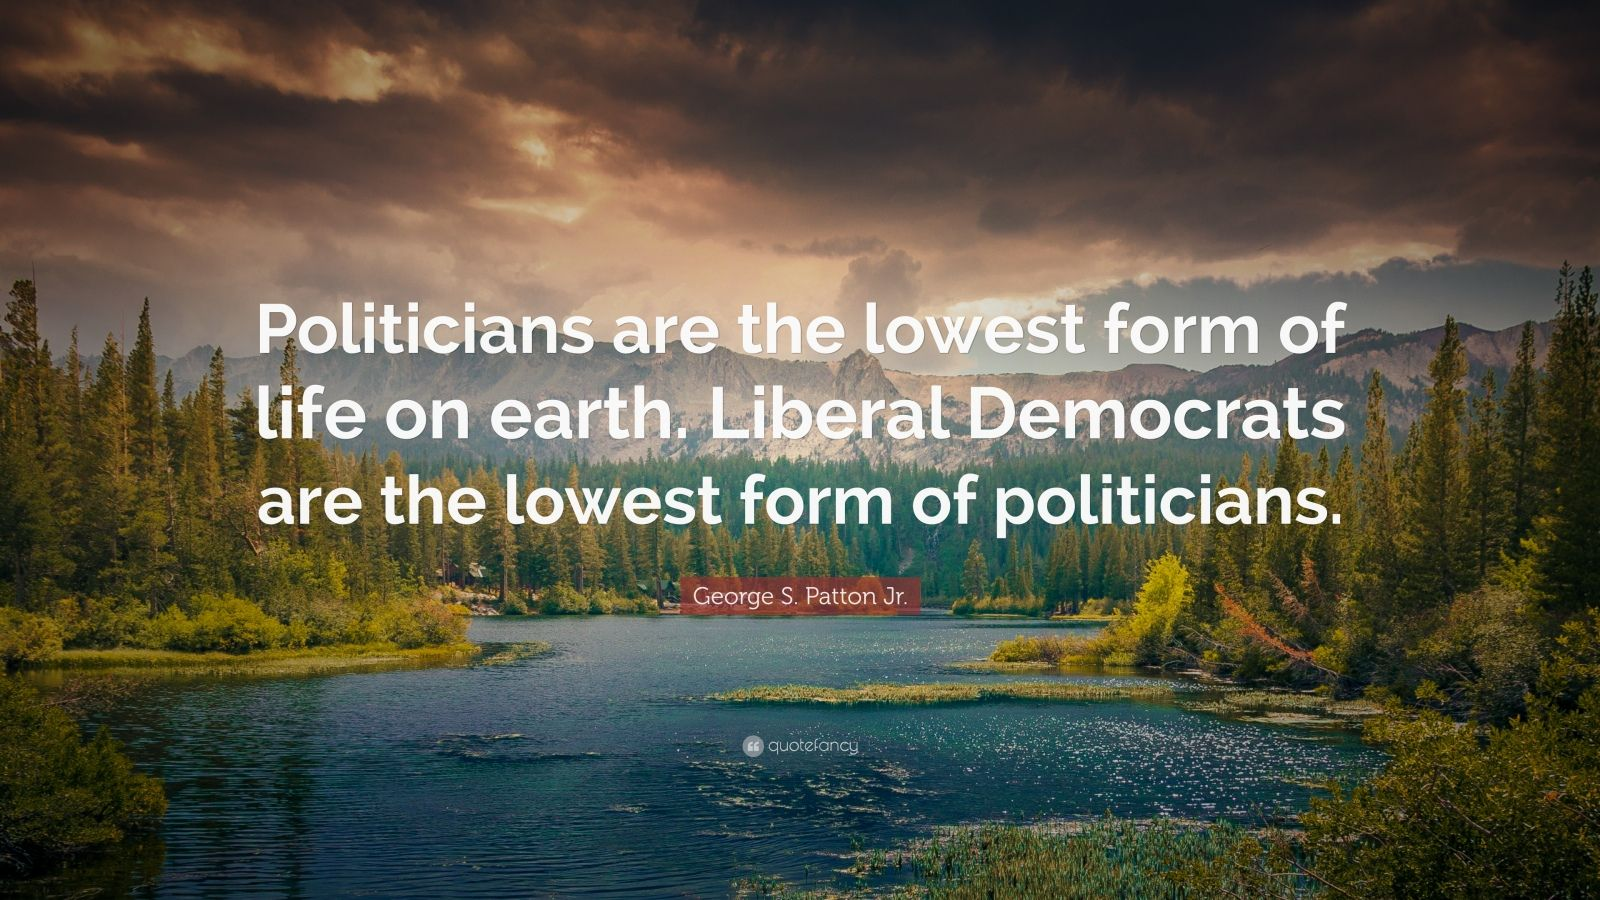 Pride And Prejudice Quotes Wallpaper George S Patton Jr Quote Politicians Are The Lowest